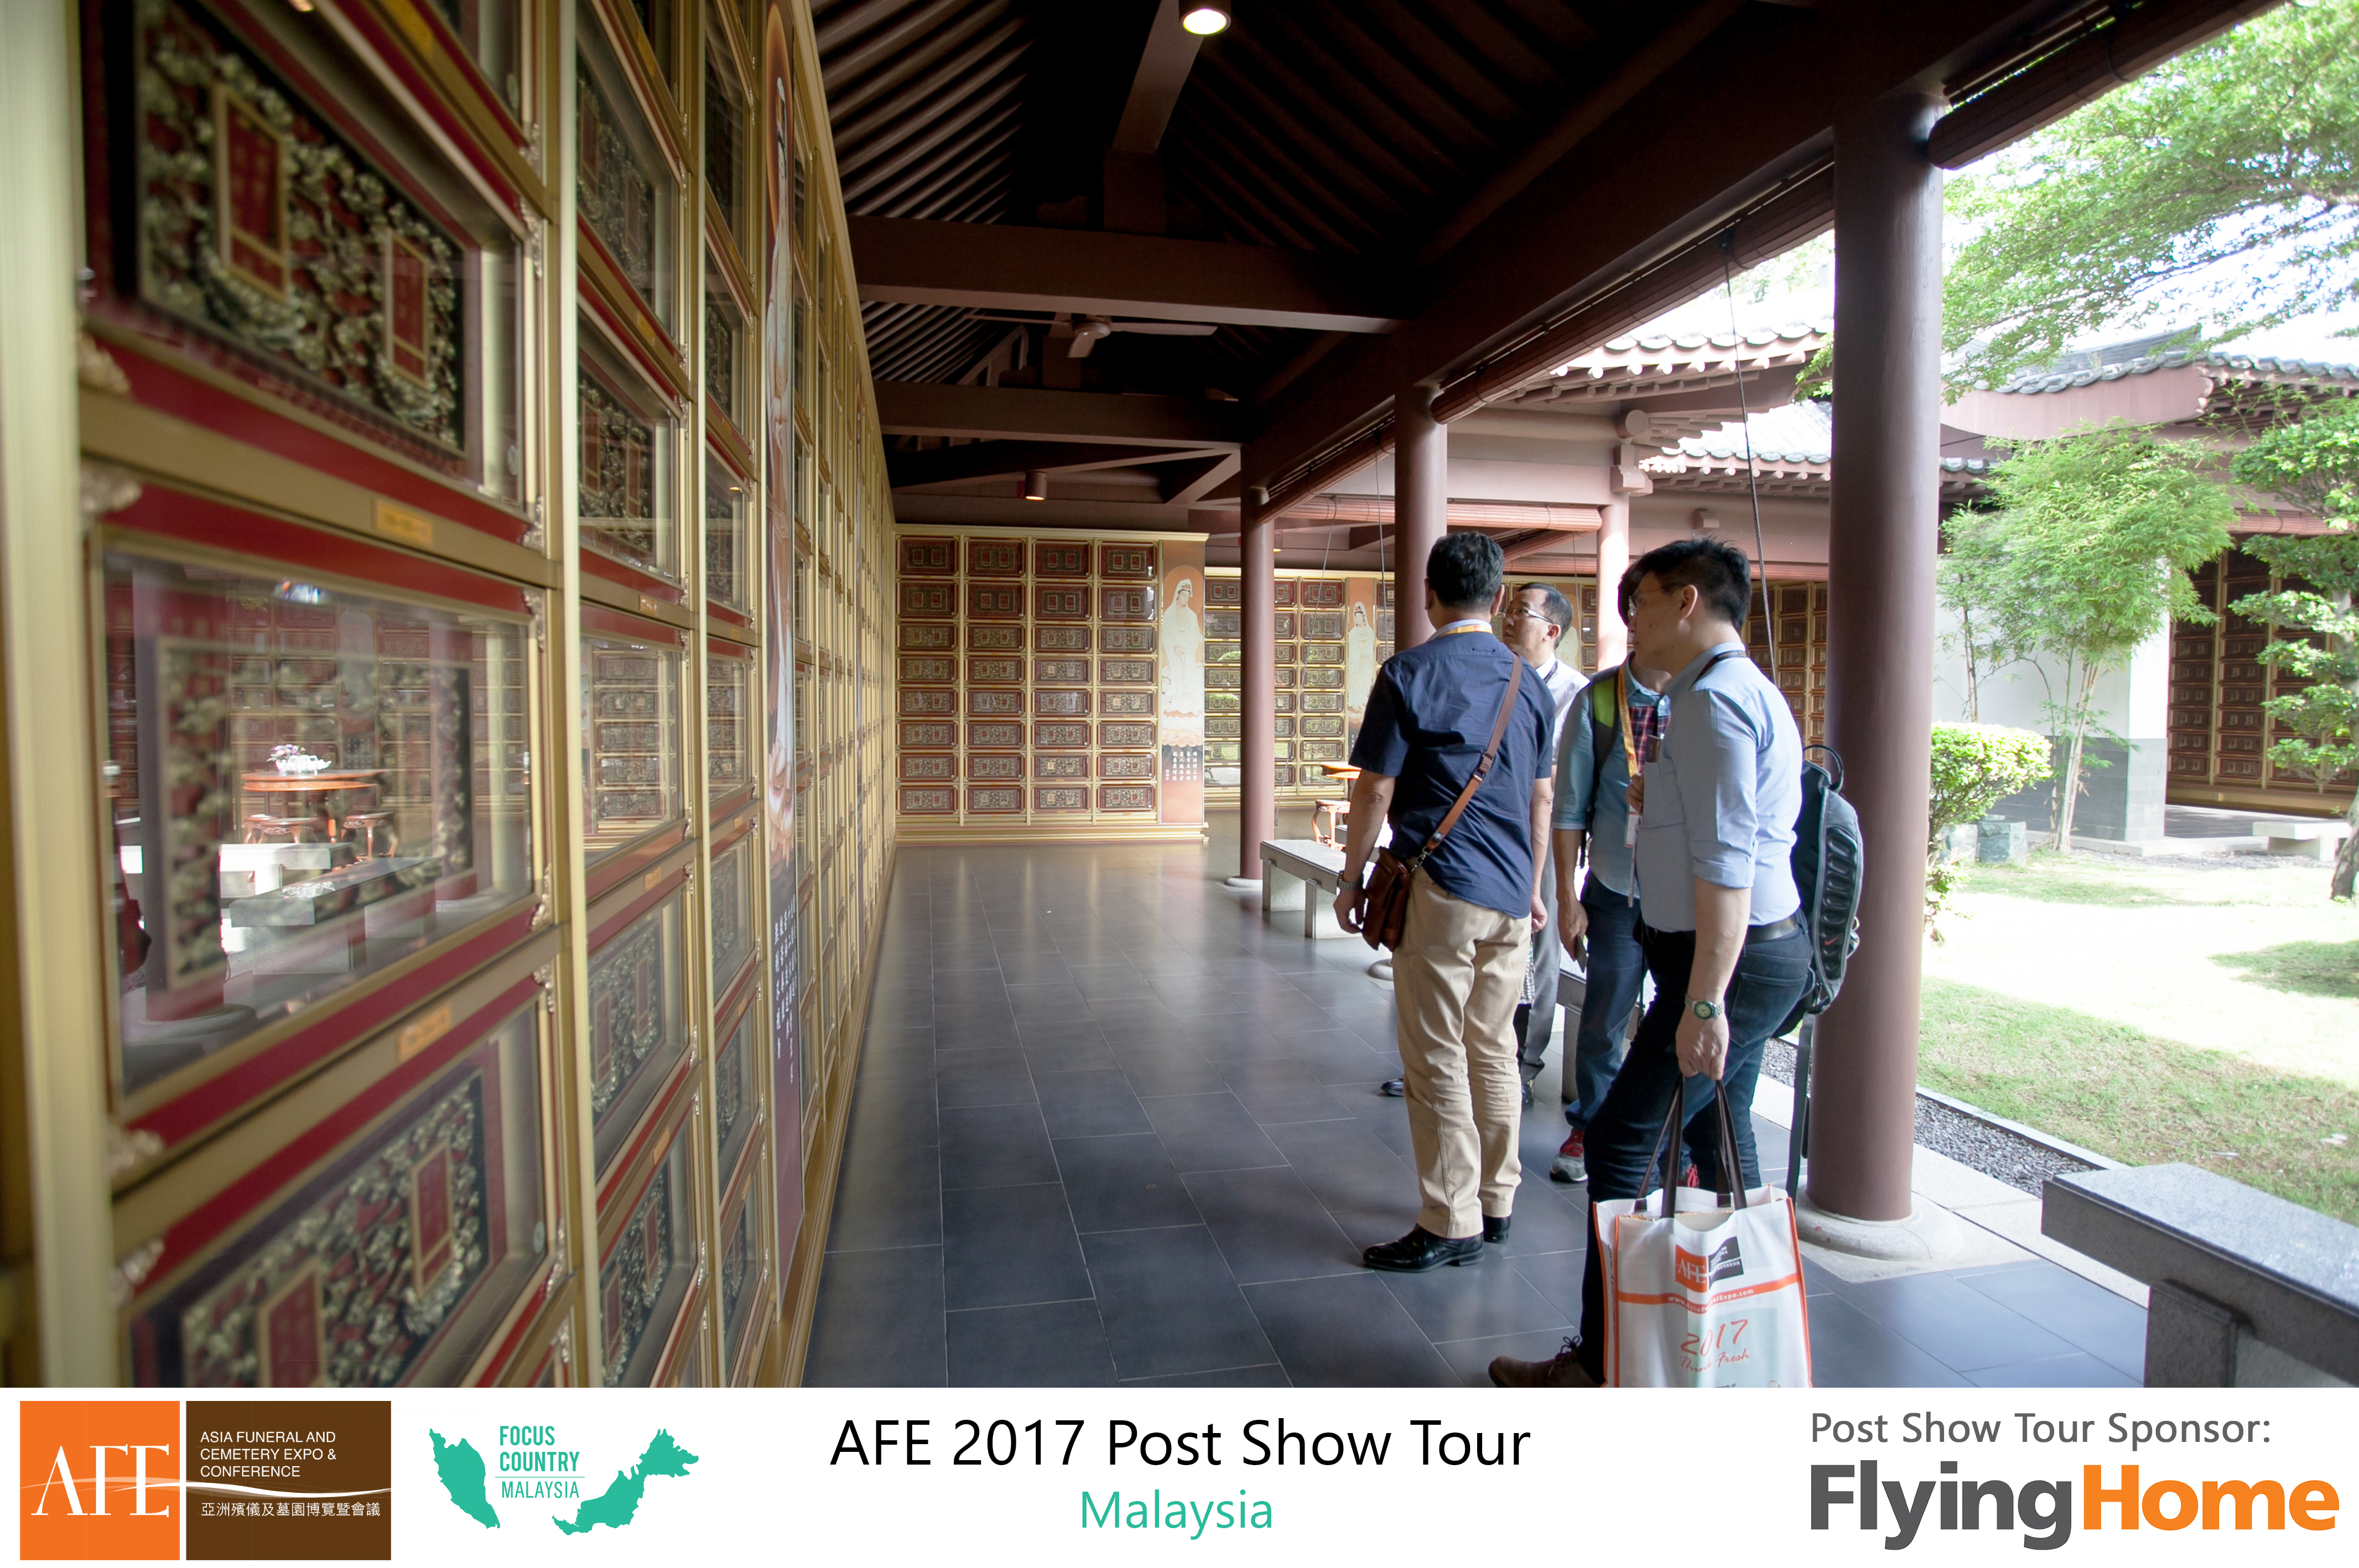 AFE Post Show Tour 2017 Day 2 - 73